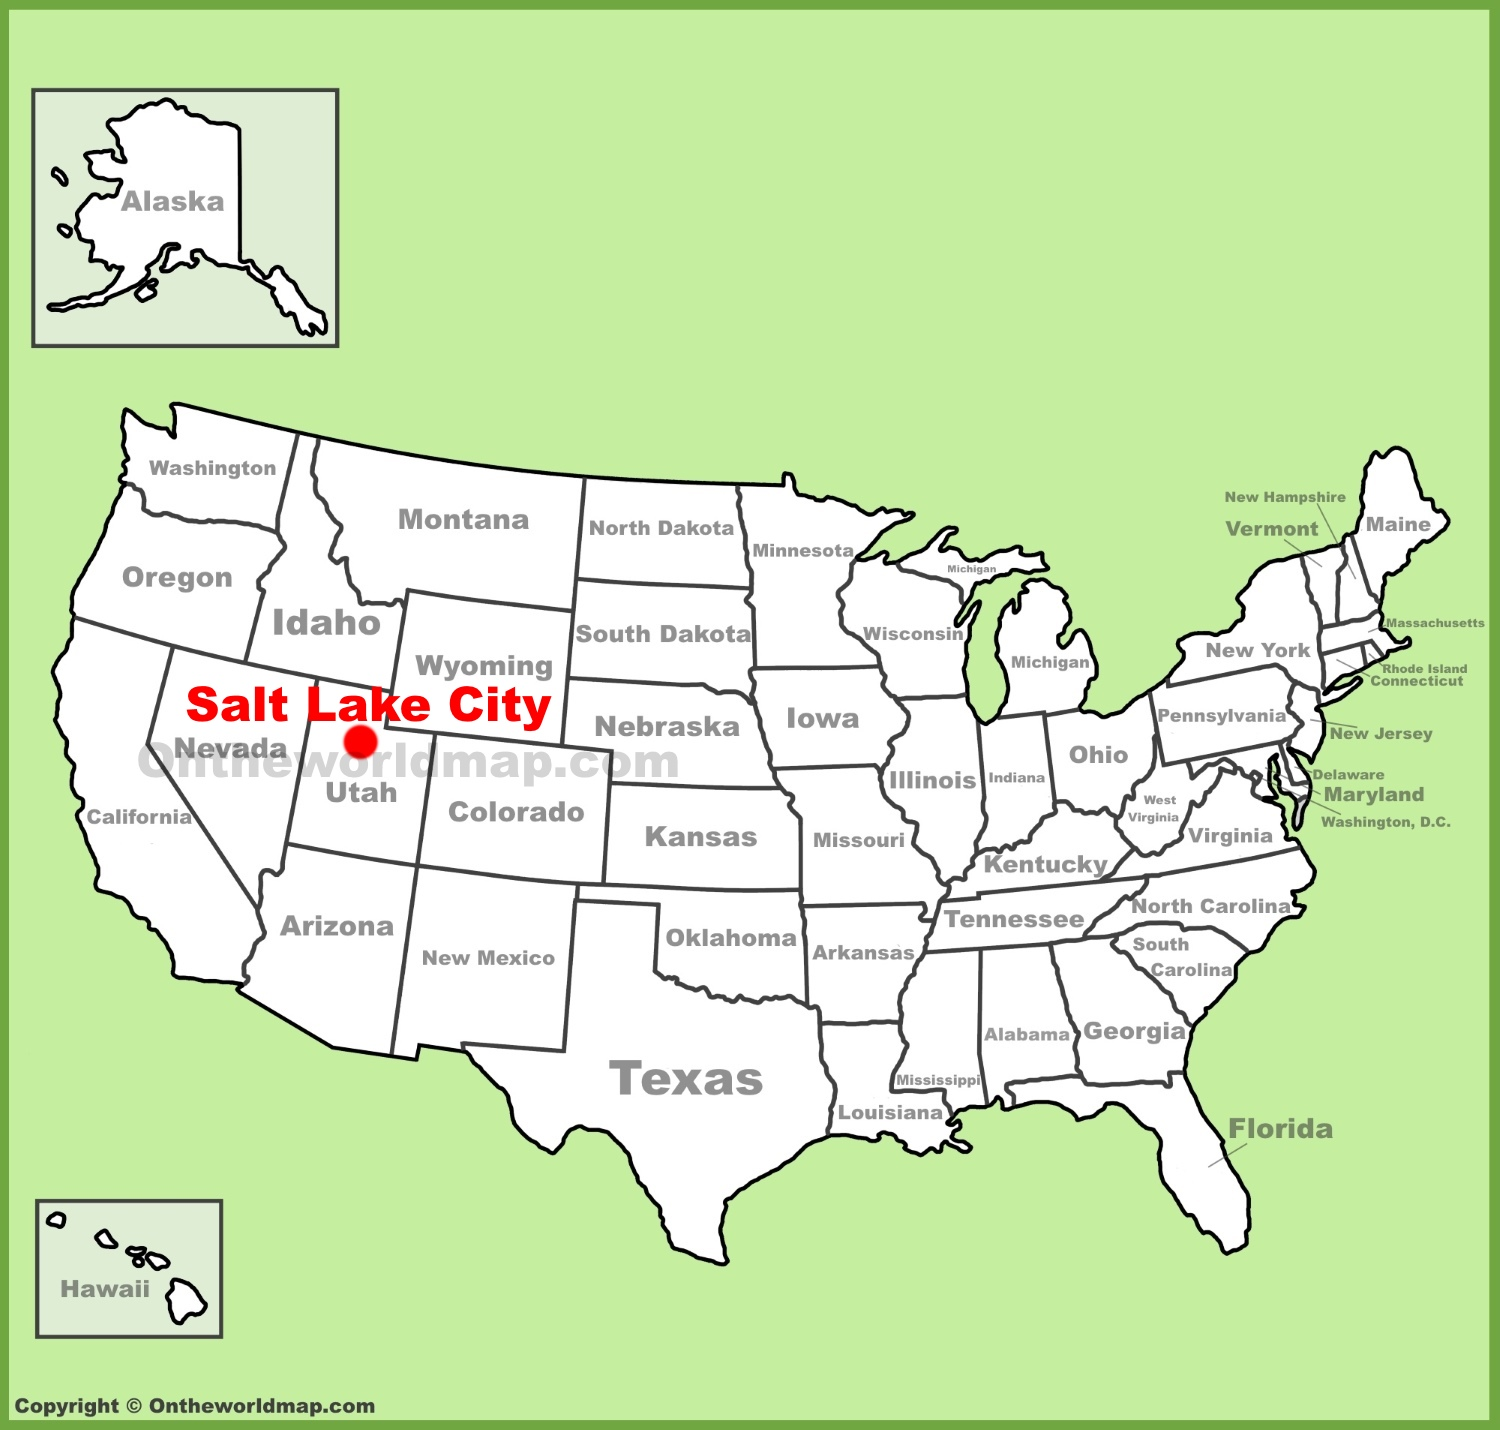 Salt Lake City Maps Utah US Maps Of Salt Lake City - Map of colorado ski resorts and cities